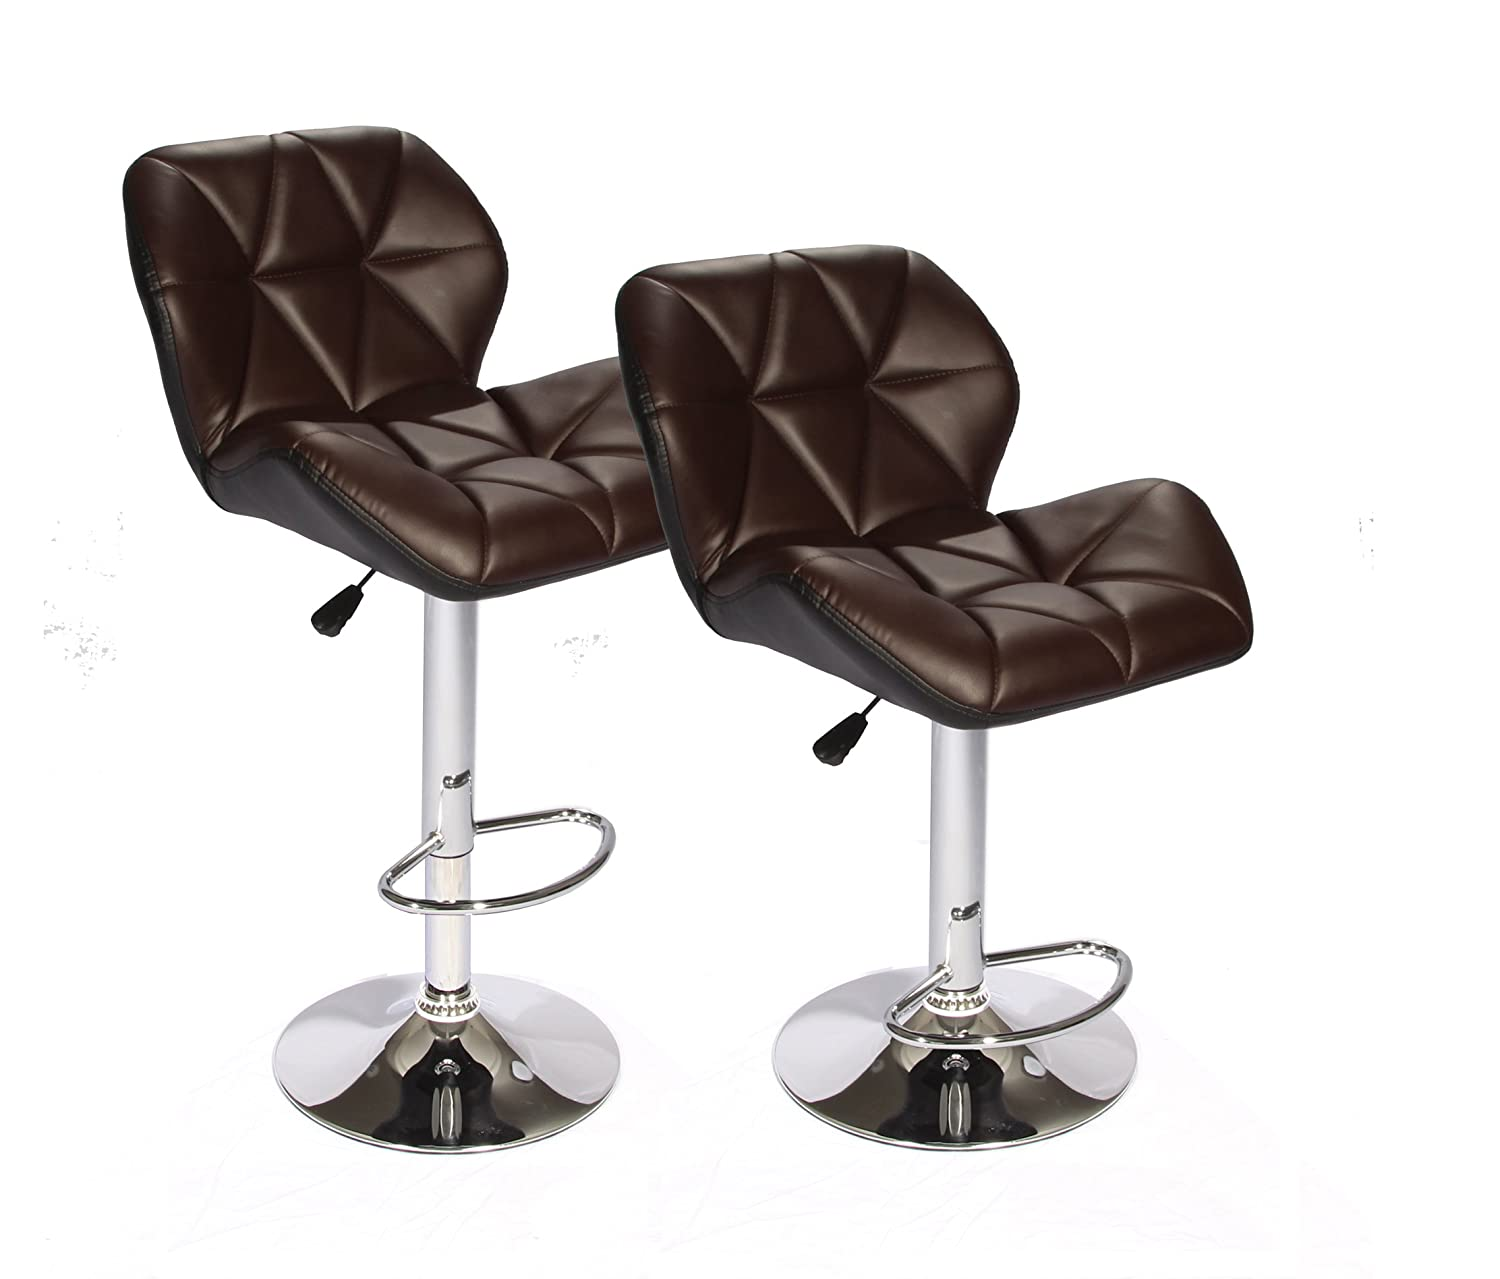 Amazon.com: SET of (2) Brown Bar Stools Leather Modern Hydraulic ...